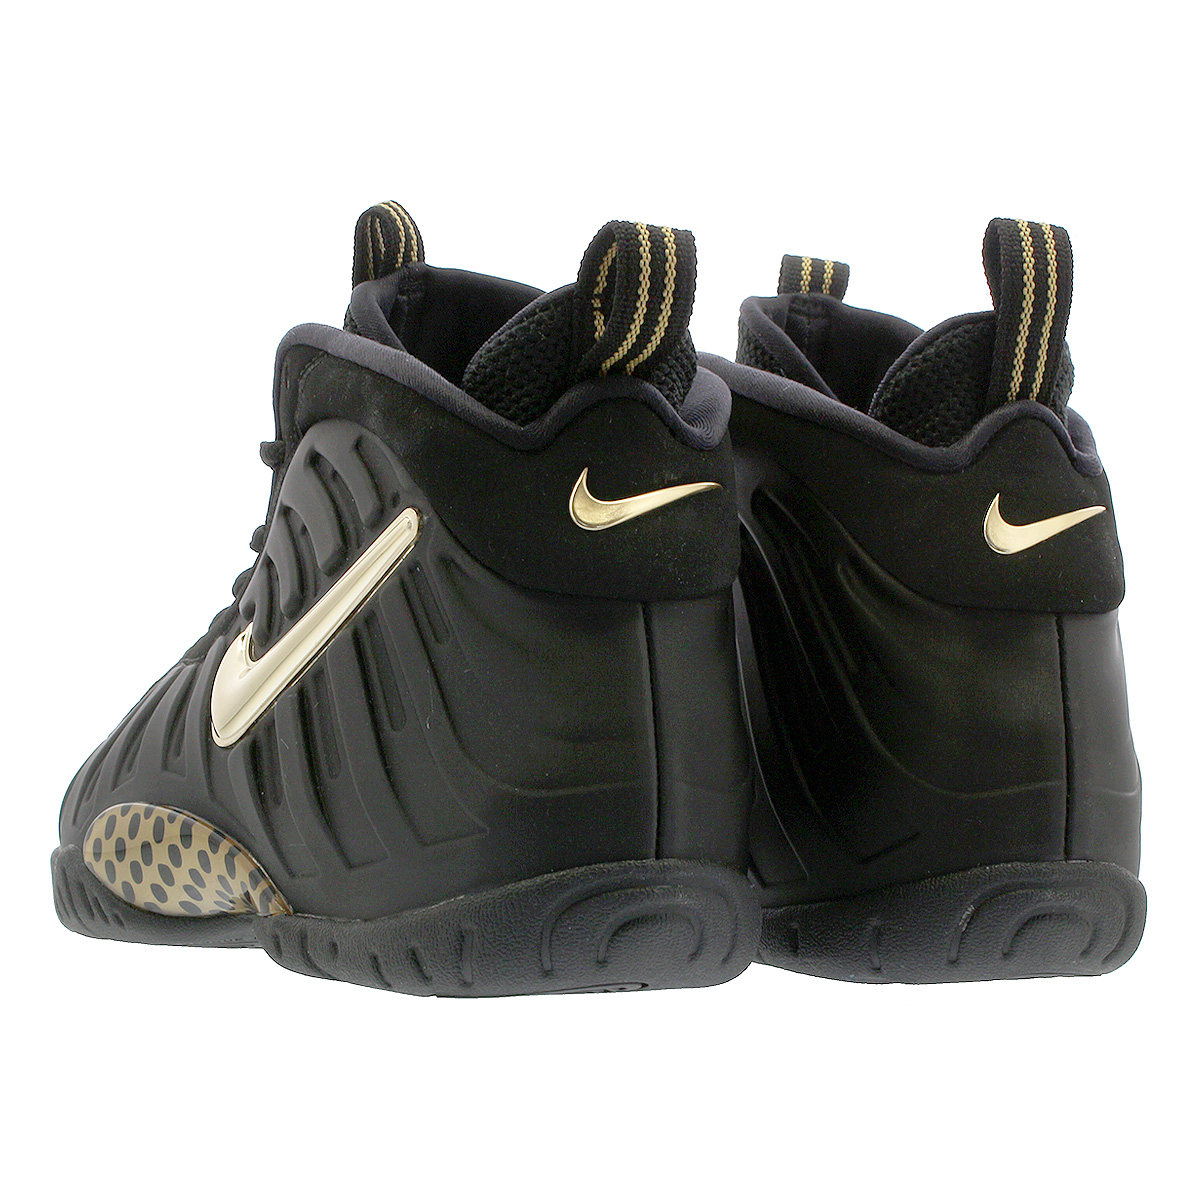 6fcbb6c171cd NIKE LITTLE POSITE PRO GS ナイキリトルポジットプロ GS BLACK METALLIC GOLD 644